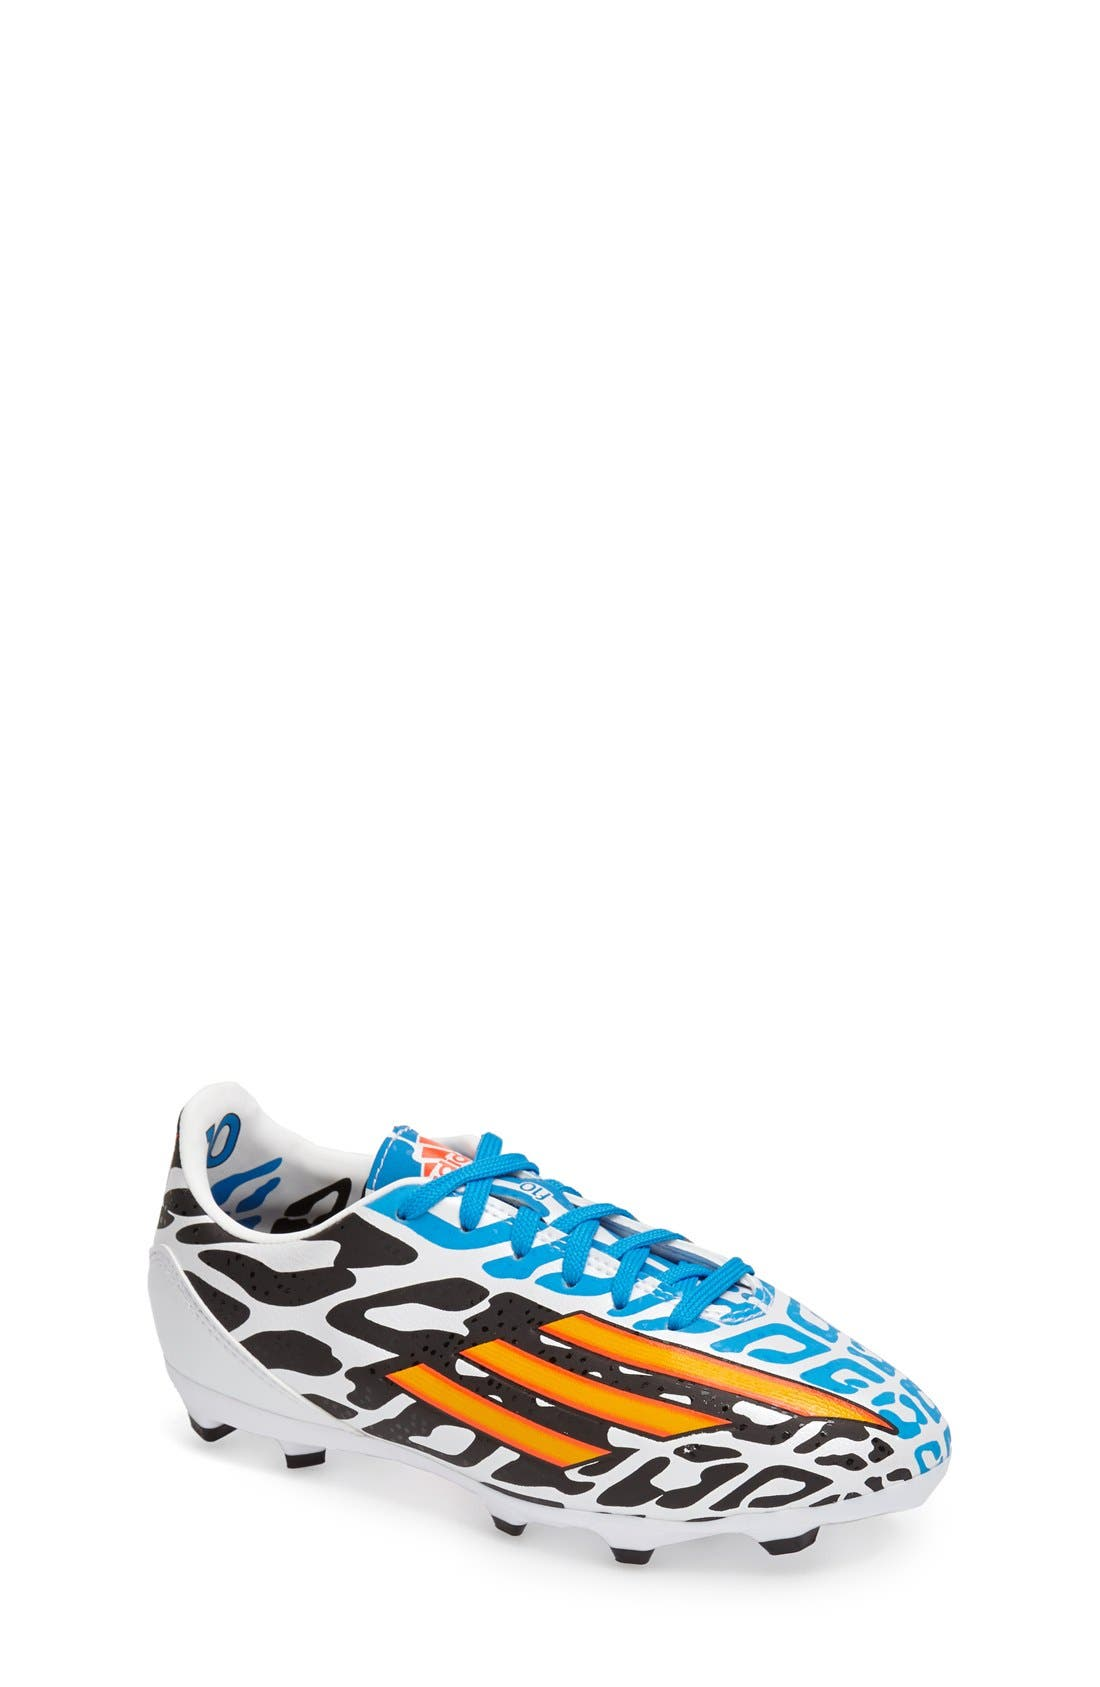 Main Image - adidas 'F10 FG Messi - 2014 FIFA World Cup Brasil™' Soccer Cleat (Toddler, Little Kid & Big Kid)